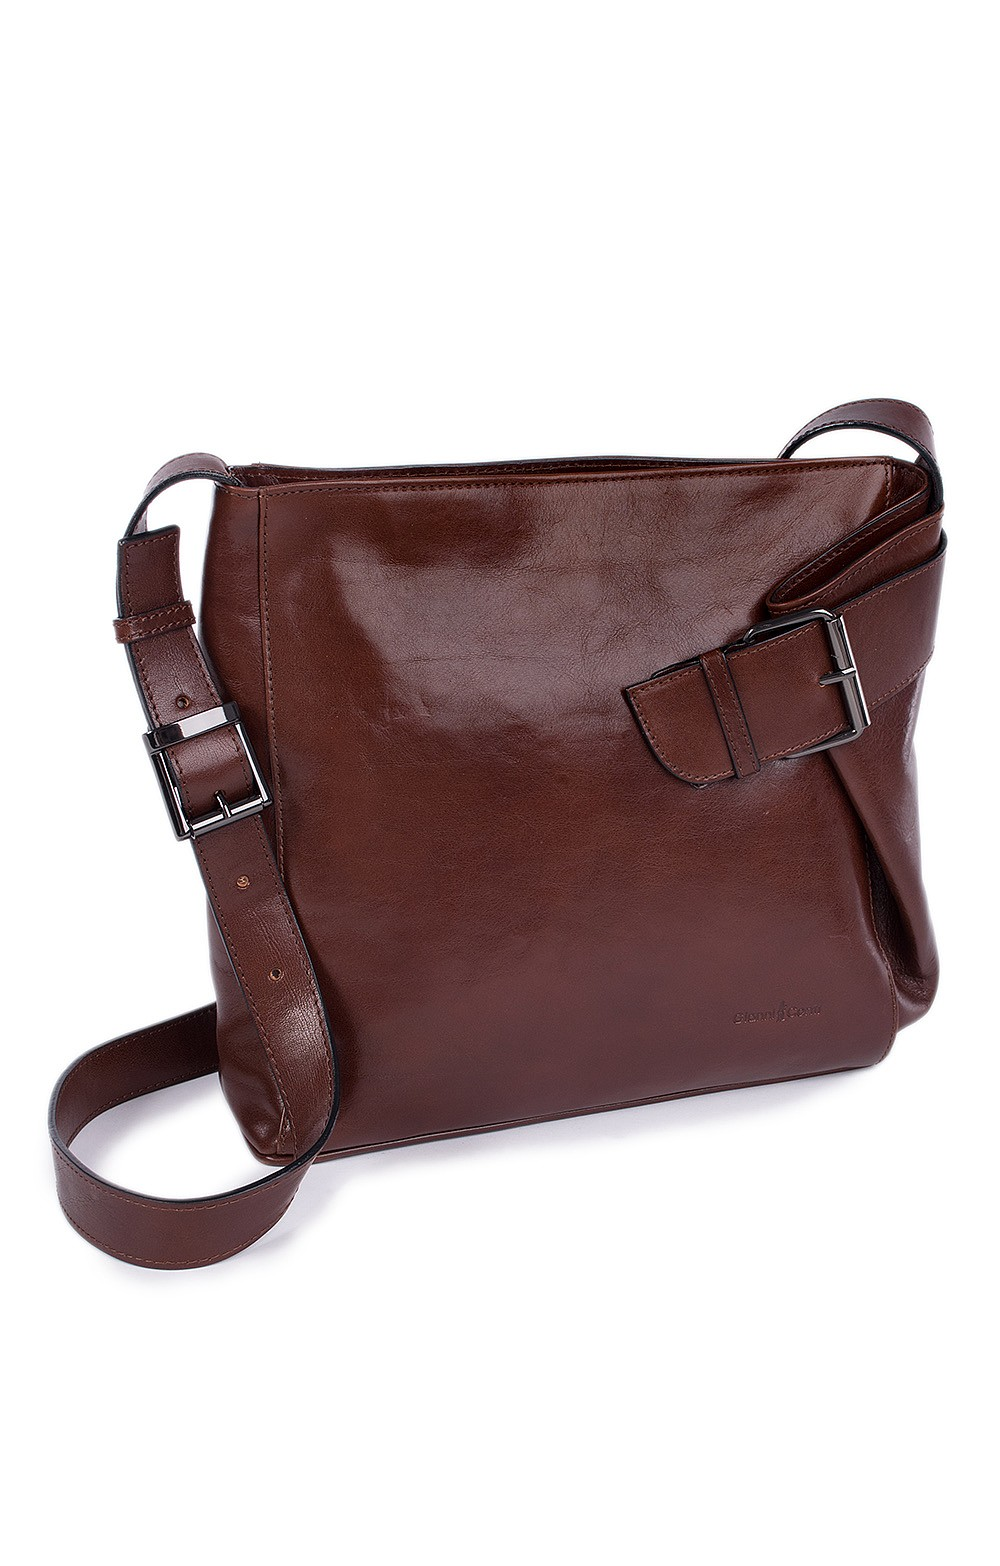 Las Gianni Conti Side Buckle Bag